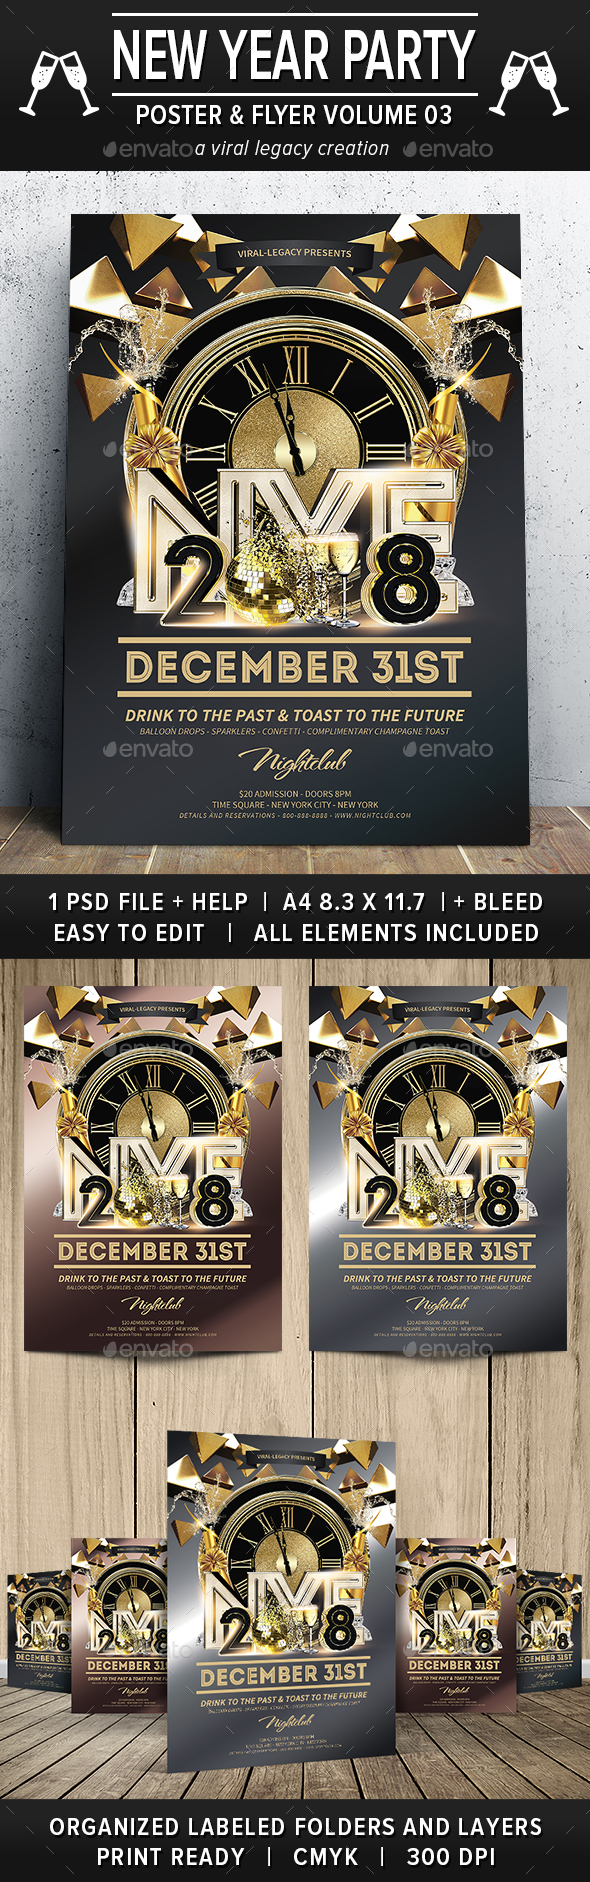 New Year Party Poster / Flyer V03 - Flyers Print Templates